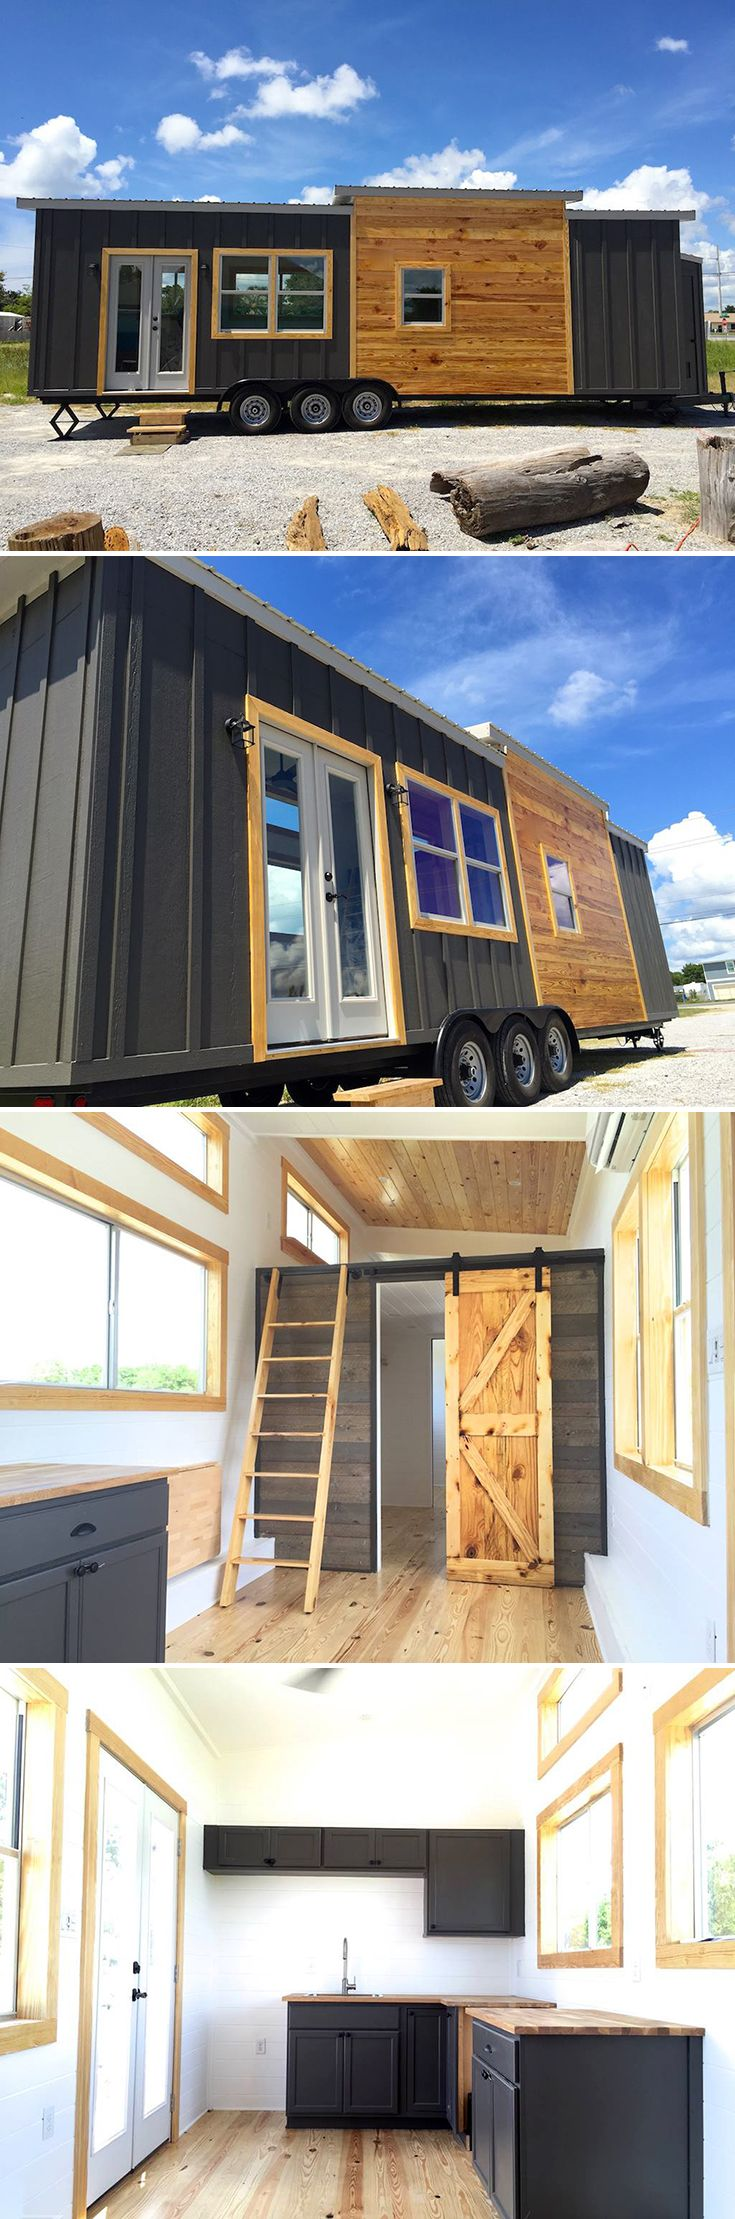 Totaling just under 350-square-feet, the 32' Irving by Tiny Life Construction sleeps up to six people with a main floor bedroom, loft, and fold out couch.